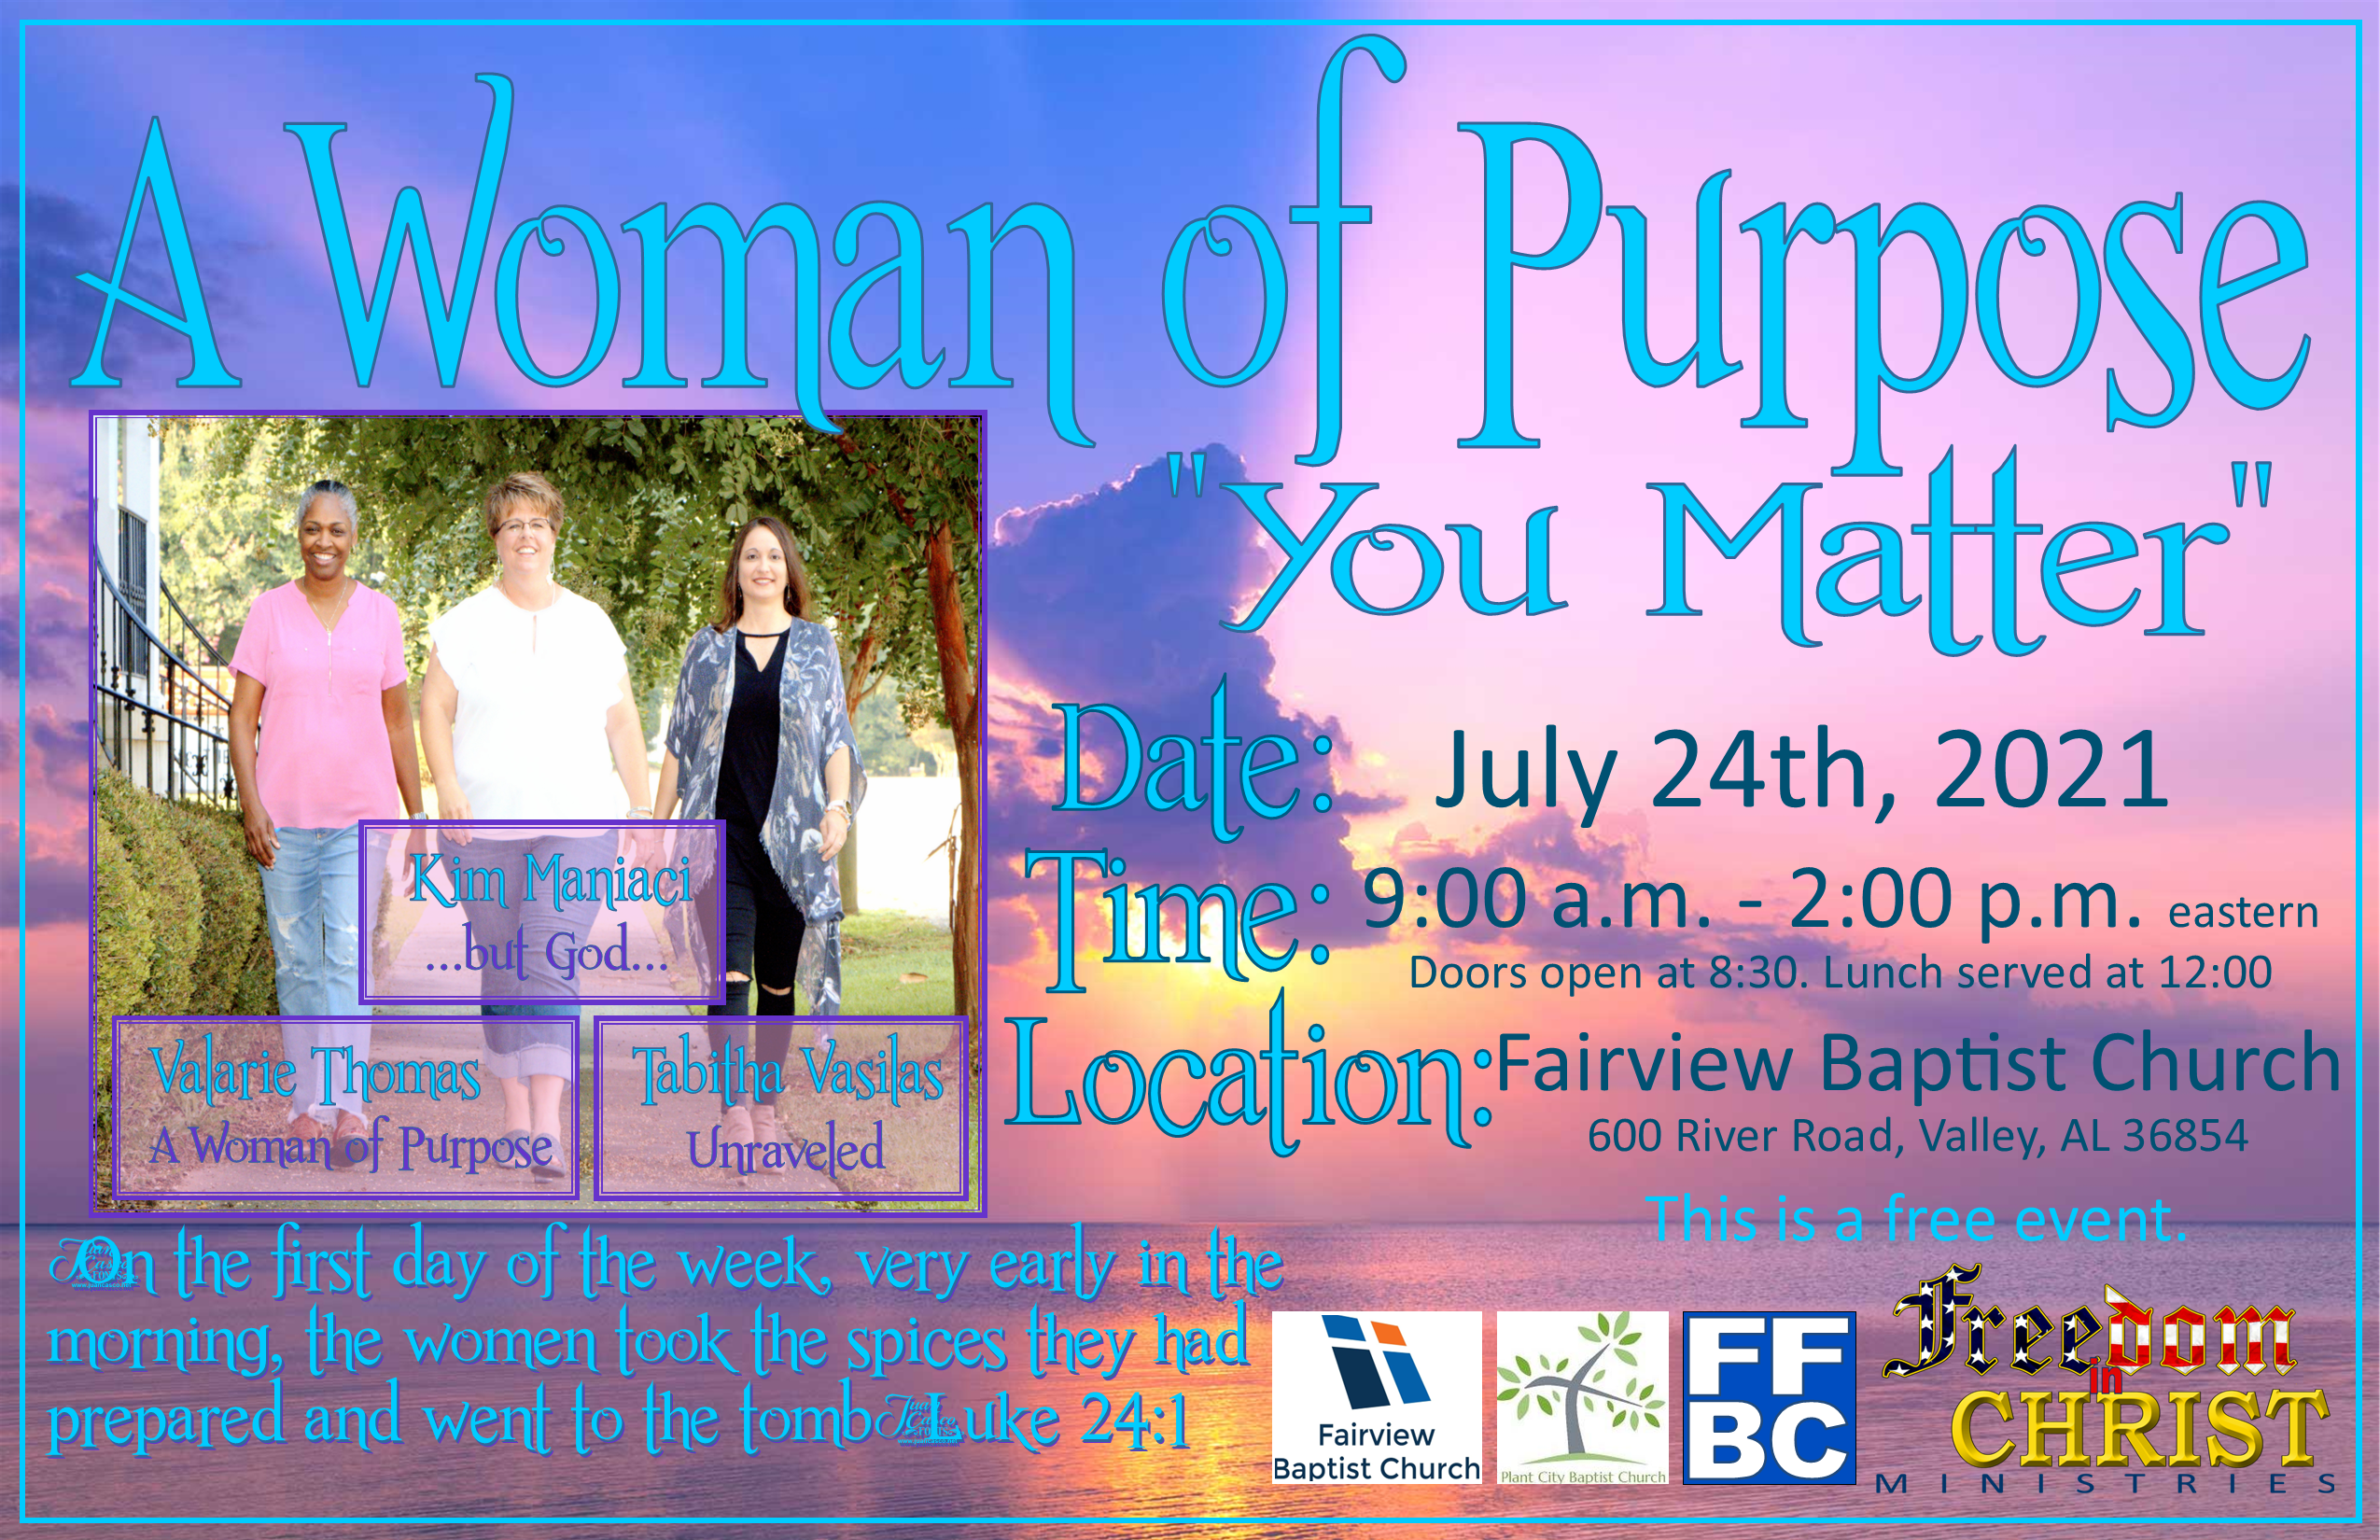 Women's event reaching out to women who are struggling with understanding God's purpose for them due to the hardships they have lived